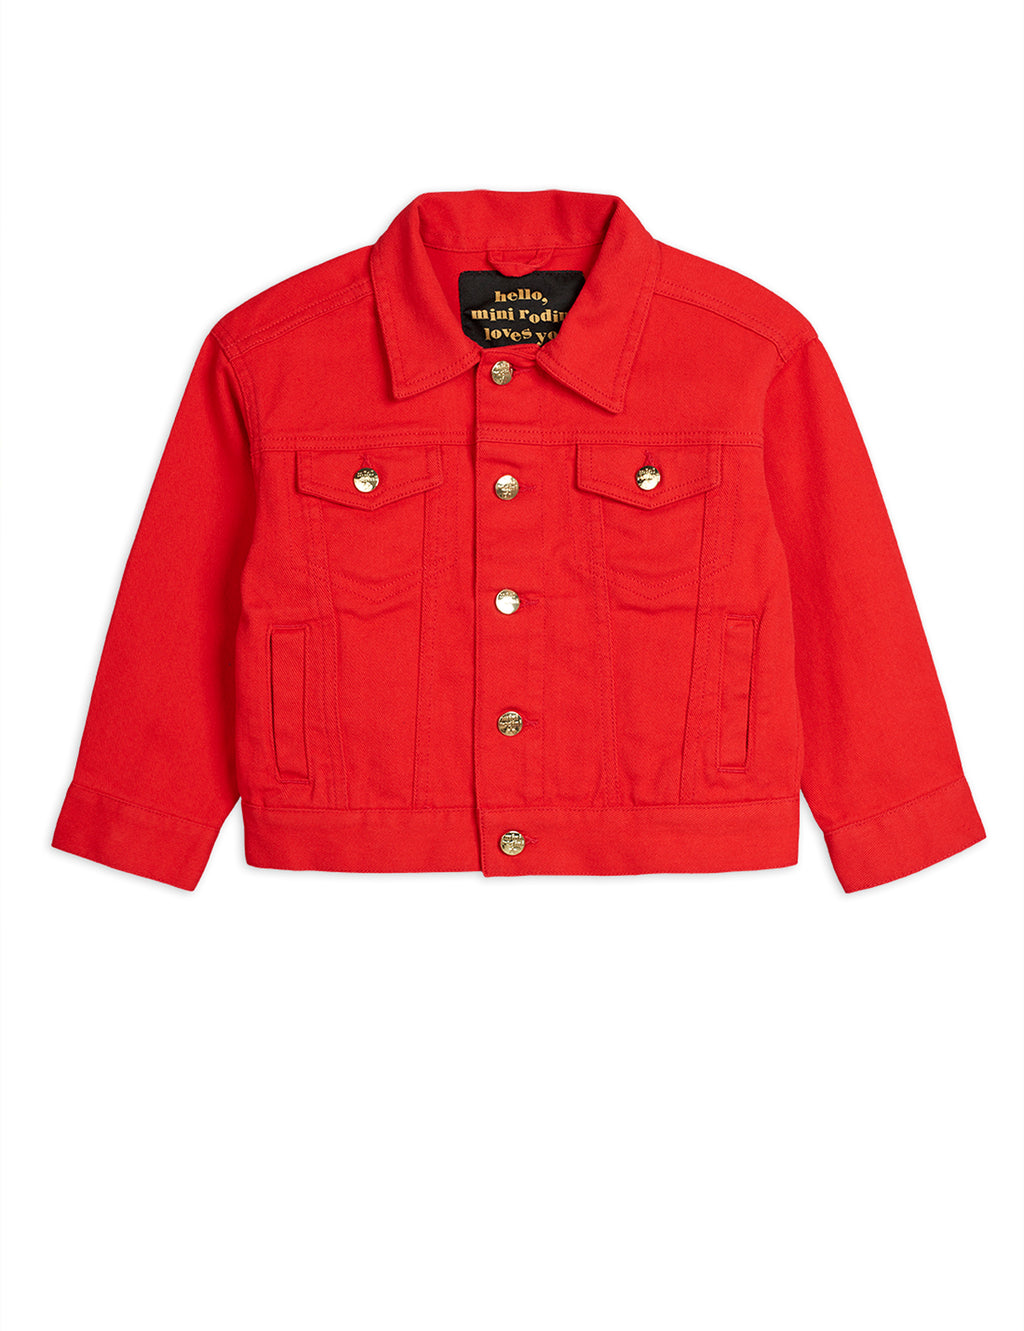 Girls Red Denim Jacket